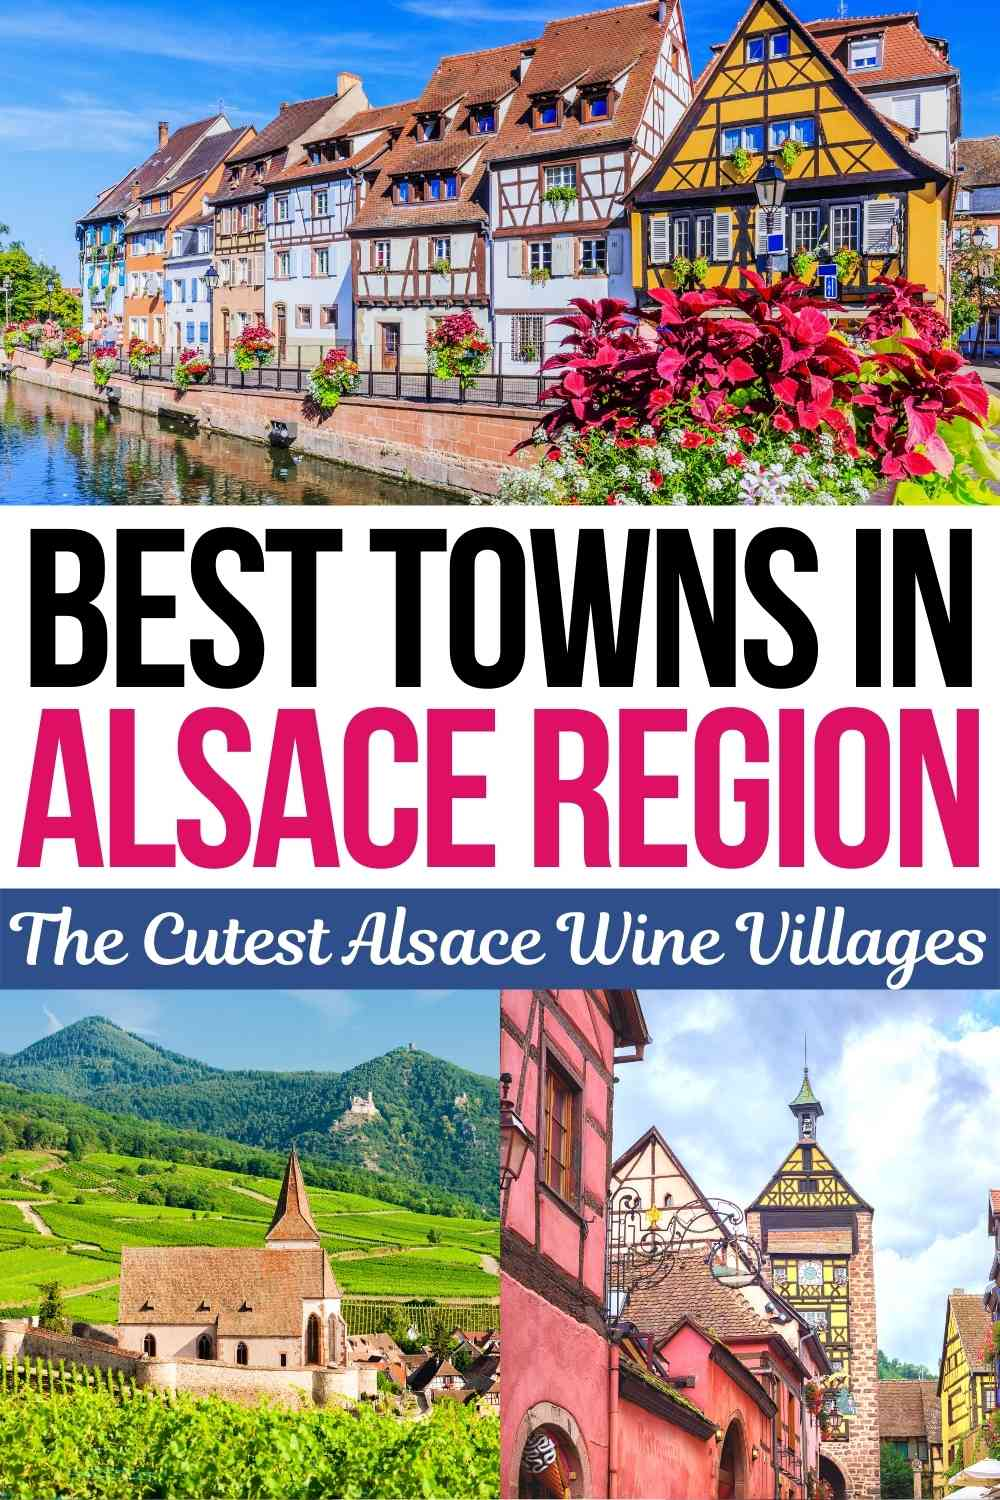 Discover the 8 best Alsace villages and towns to visit during your France vacation! This list includes popular Alsatian towns like Colmar and Eguisheim as well as some hidden gems along the Alsace Wine Route. | alsace wine villages | where to stay in alsace france | things to do in alsace | alsace destinations | alsace region